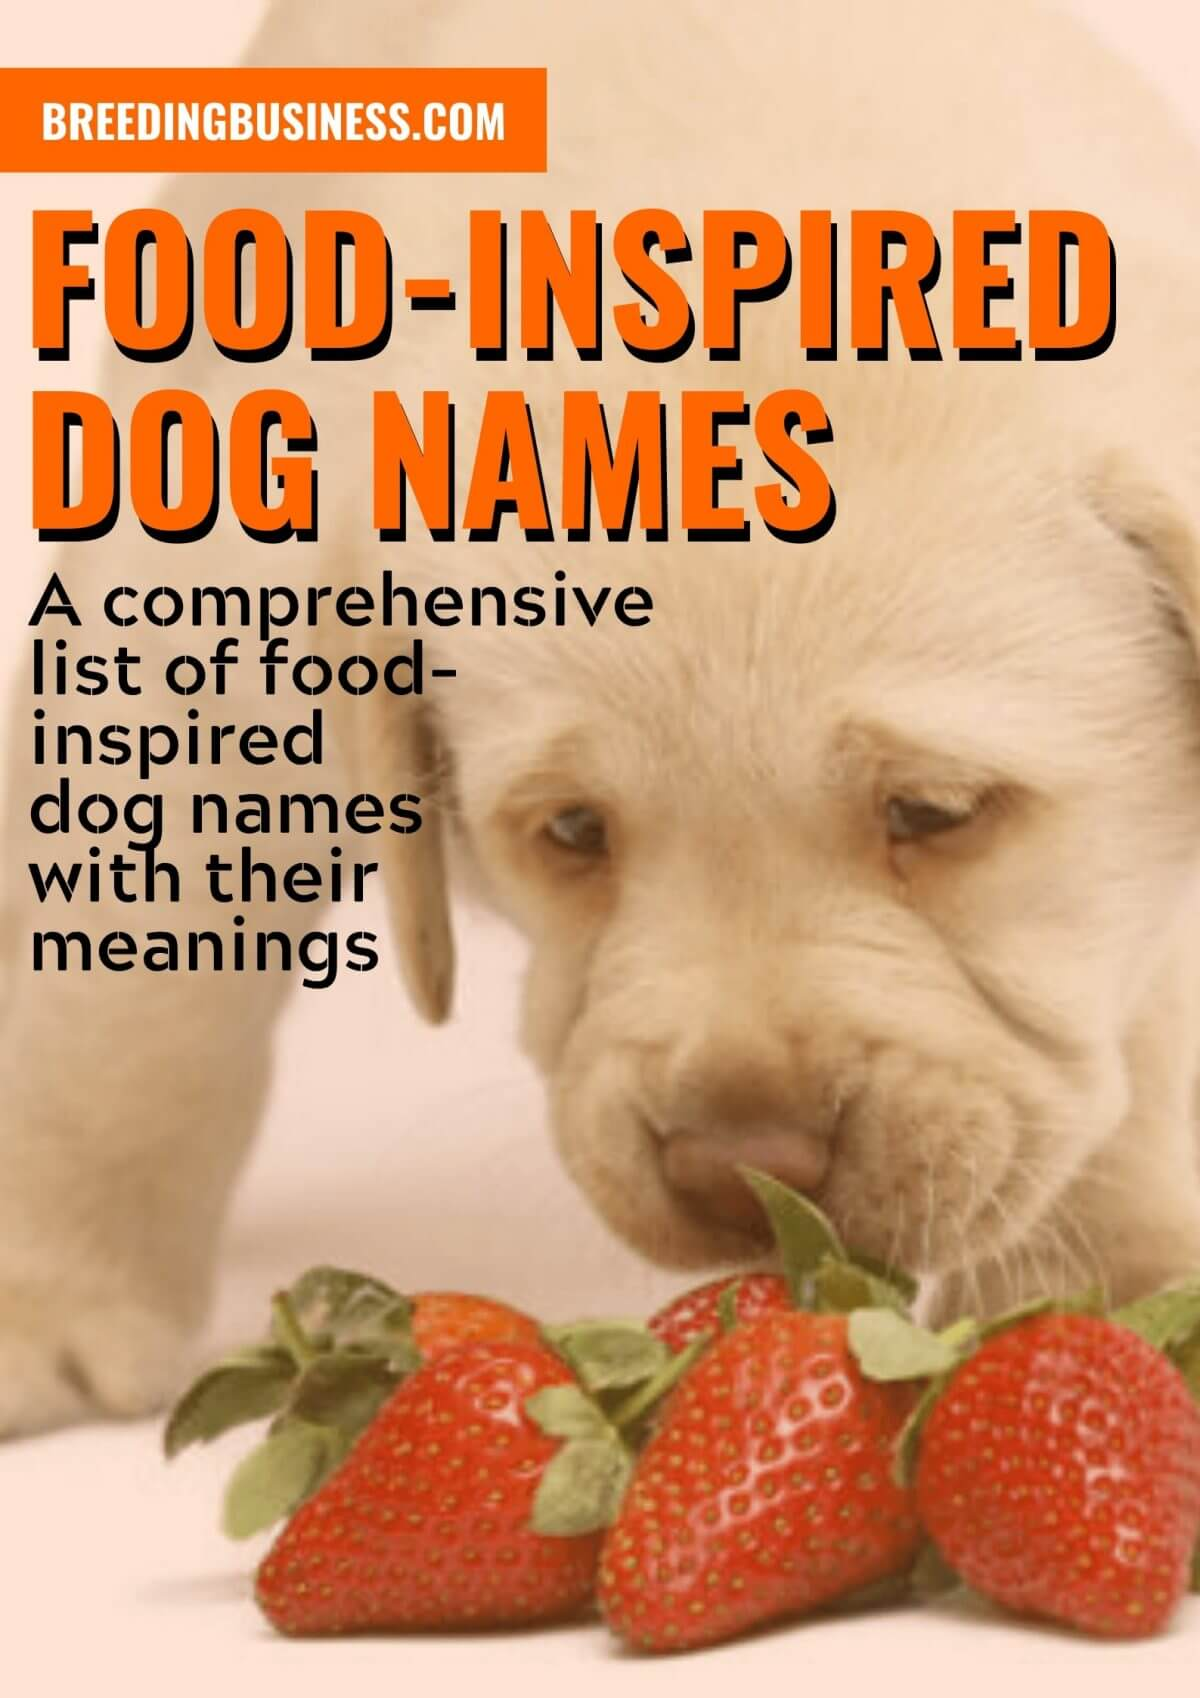 Food-Inspired Dog Names